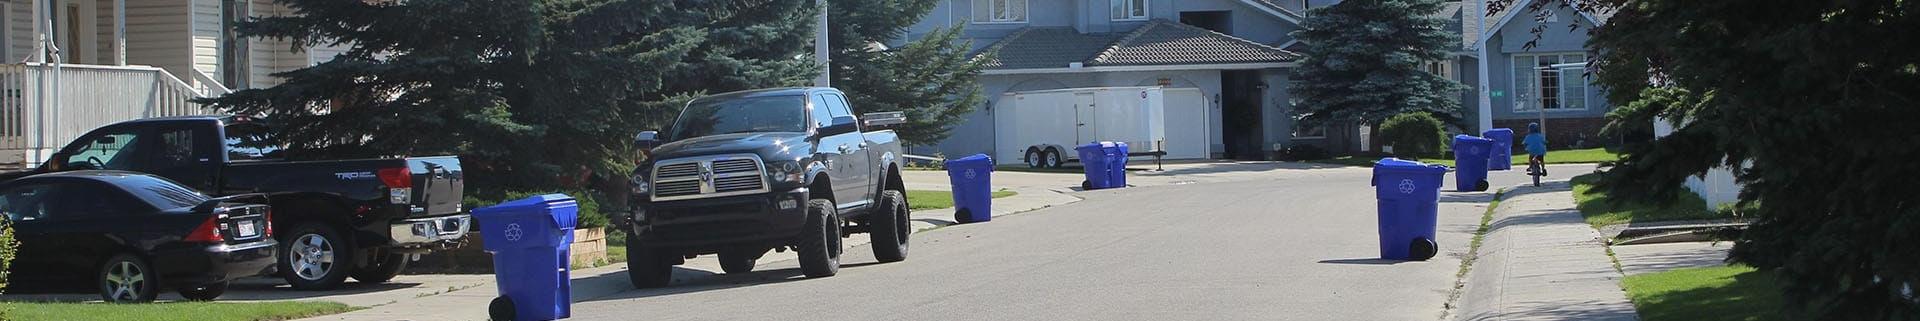 Residential street with a black pick-up truck parked and blue waste bins on the curb